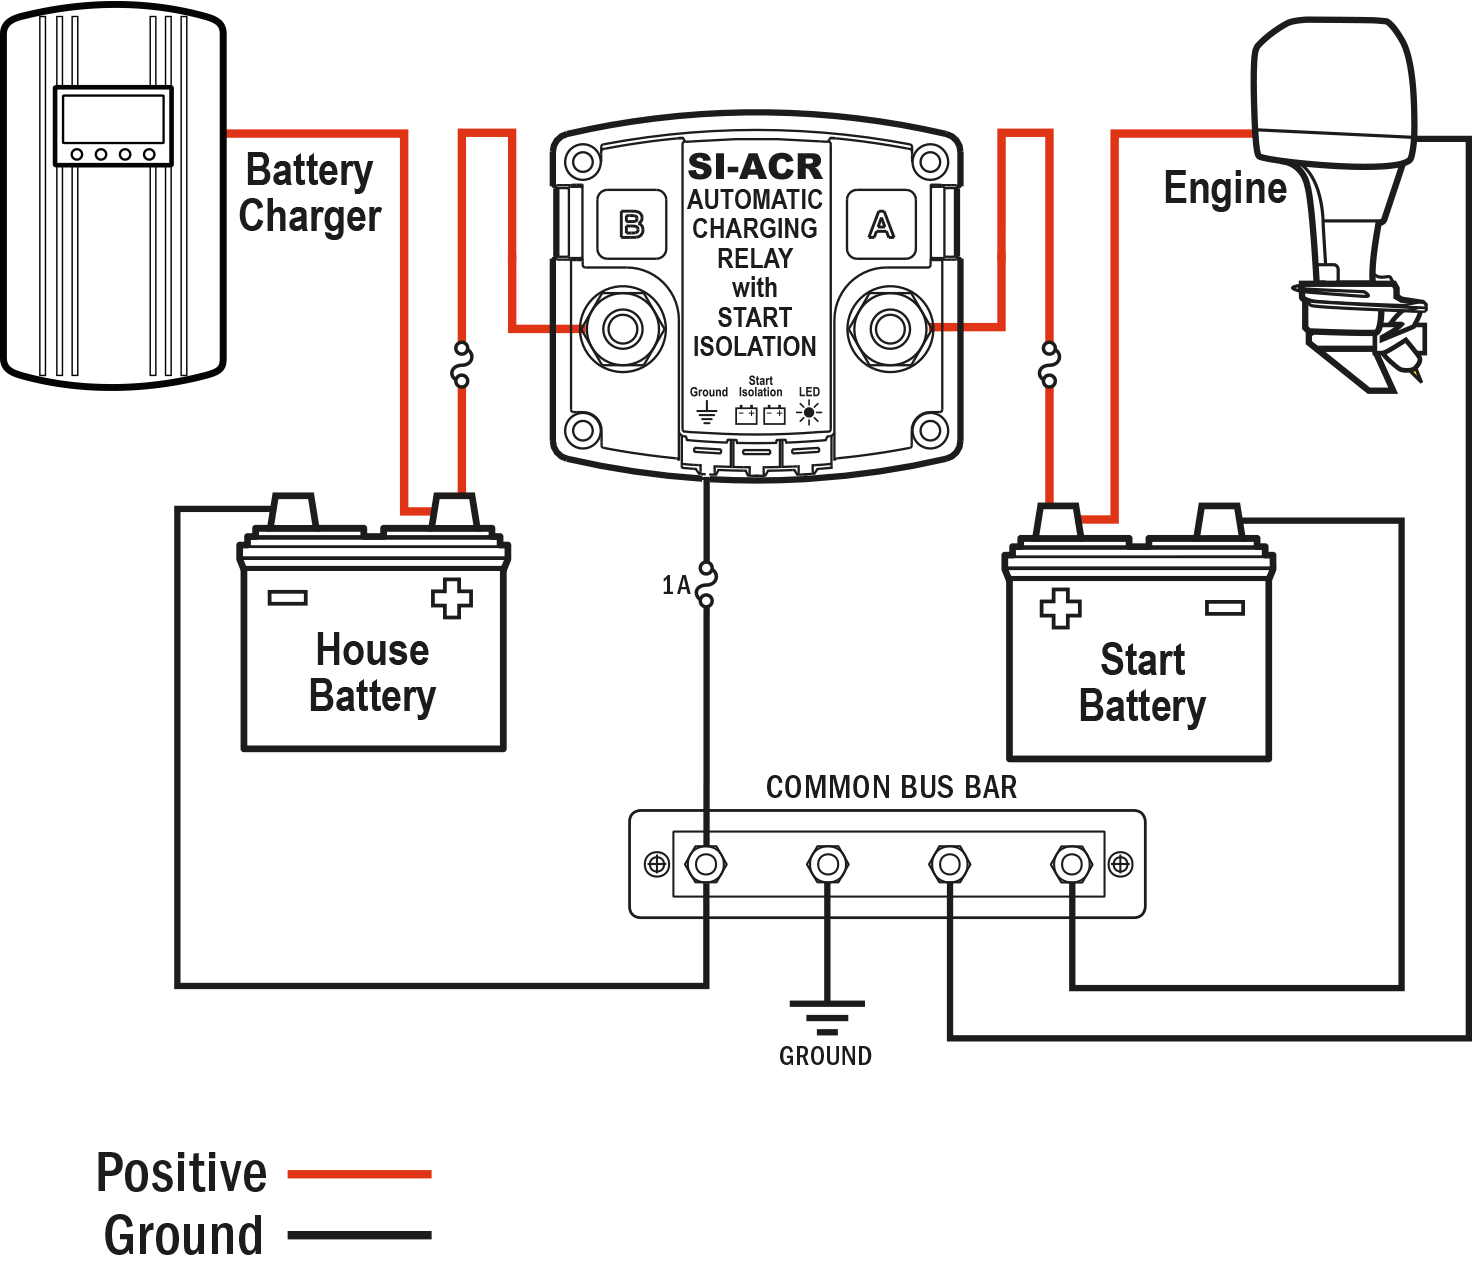 si-acr automatic charging relay - 12/24v dc 120a - blue sea systems dual battery wiring diagram bus #8